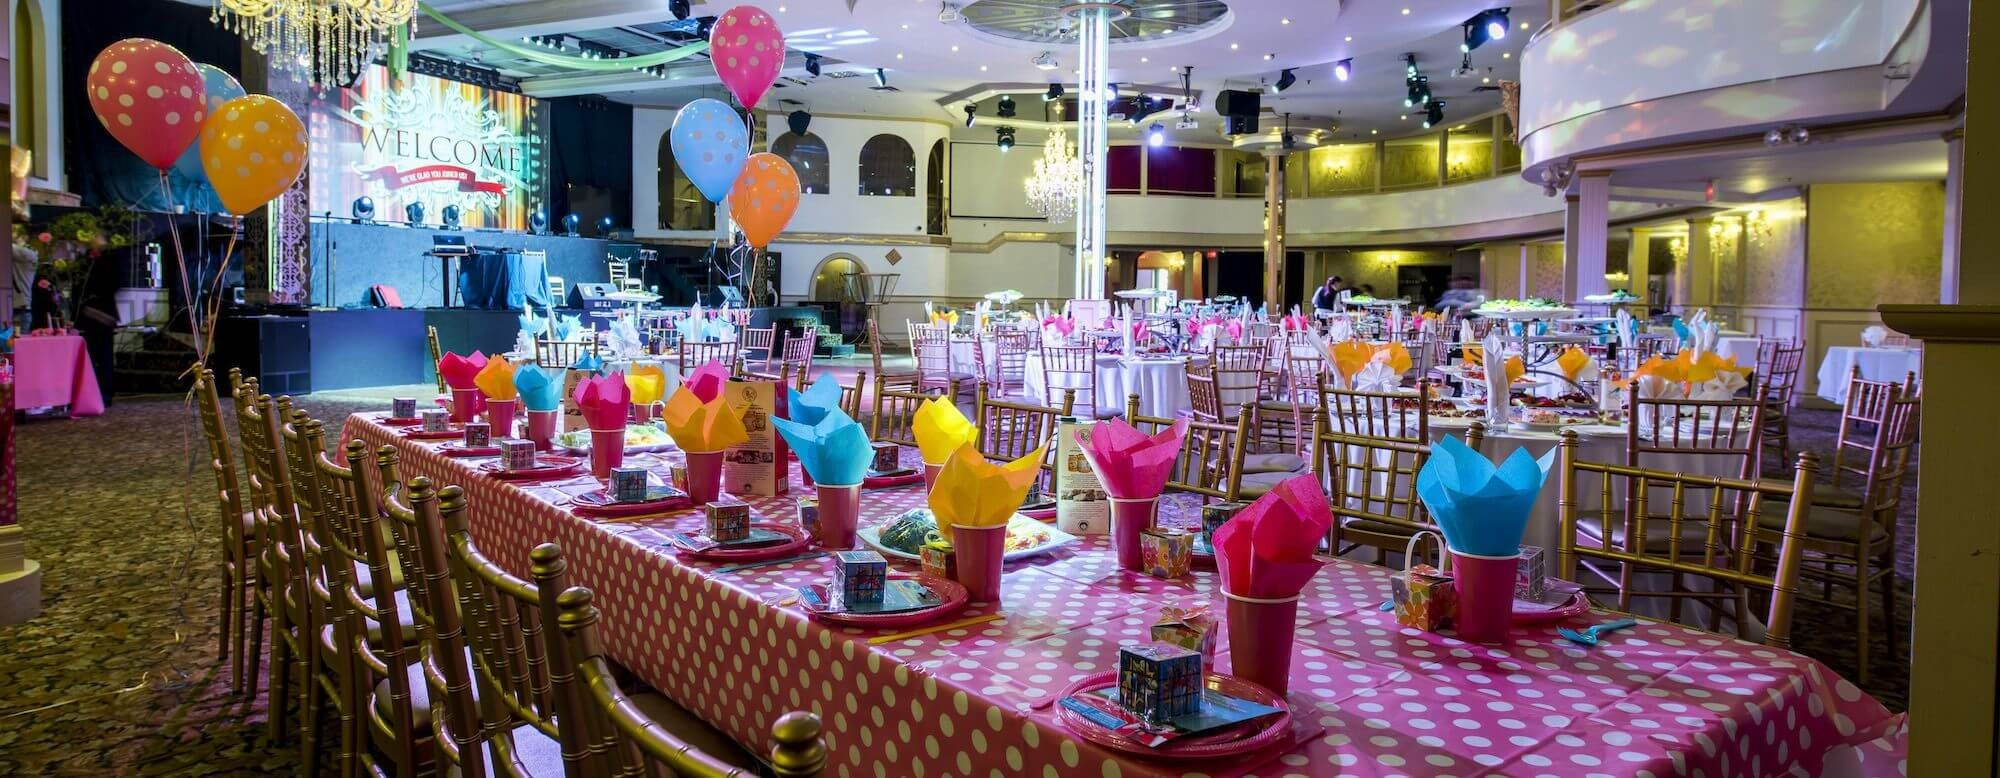 Birthday Parties The Top 20 Ideas About Birthday Party Venues Birthday Party Venues Party Venues Birthday Party Places